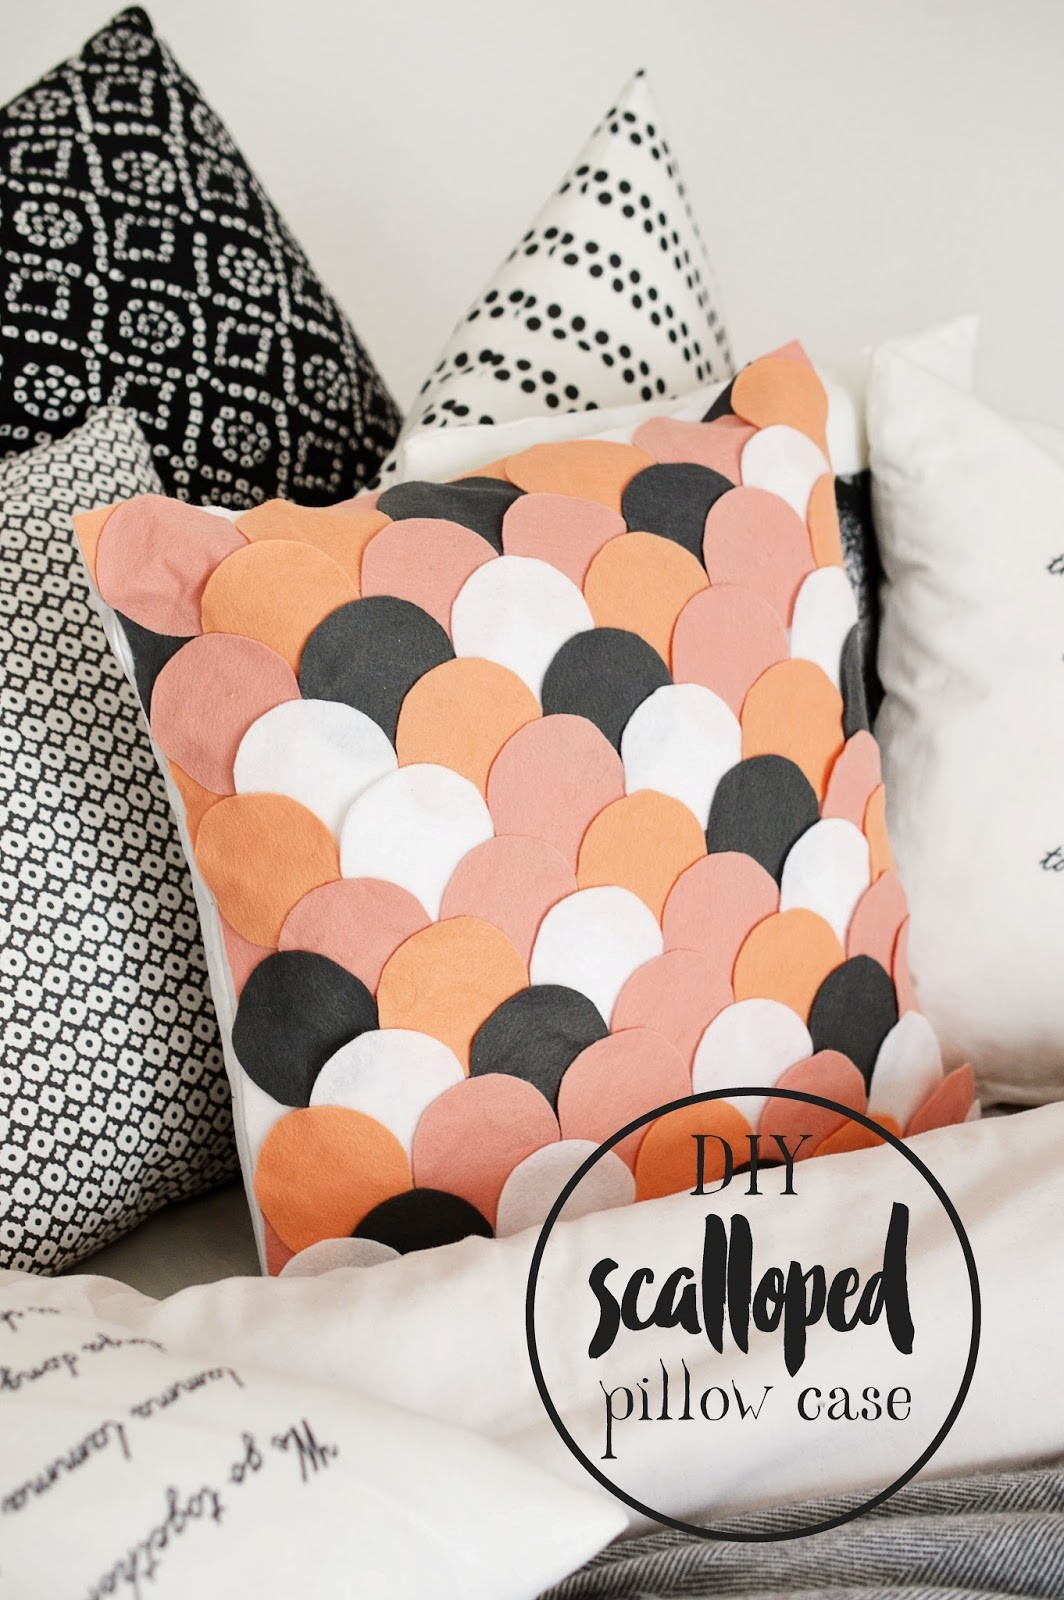 6 Accentuate Your Pillow Case via simphome